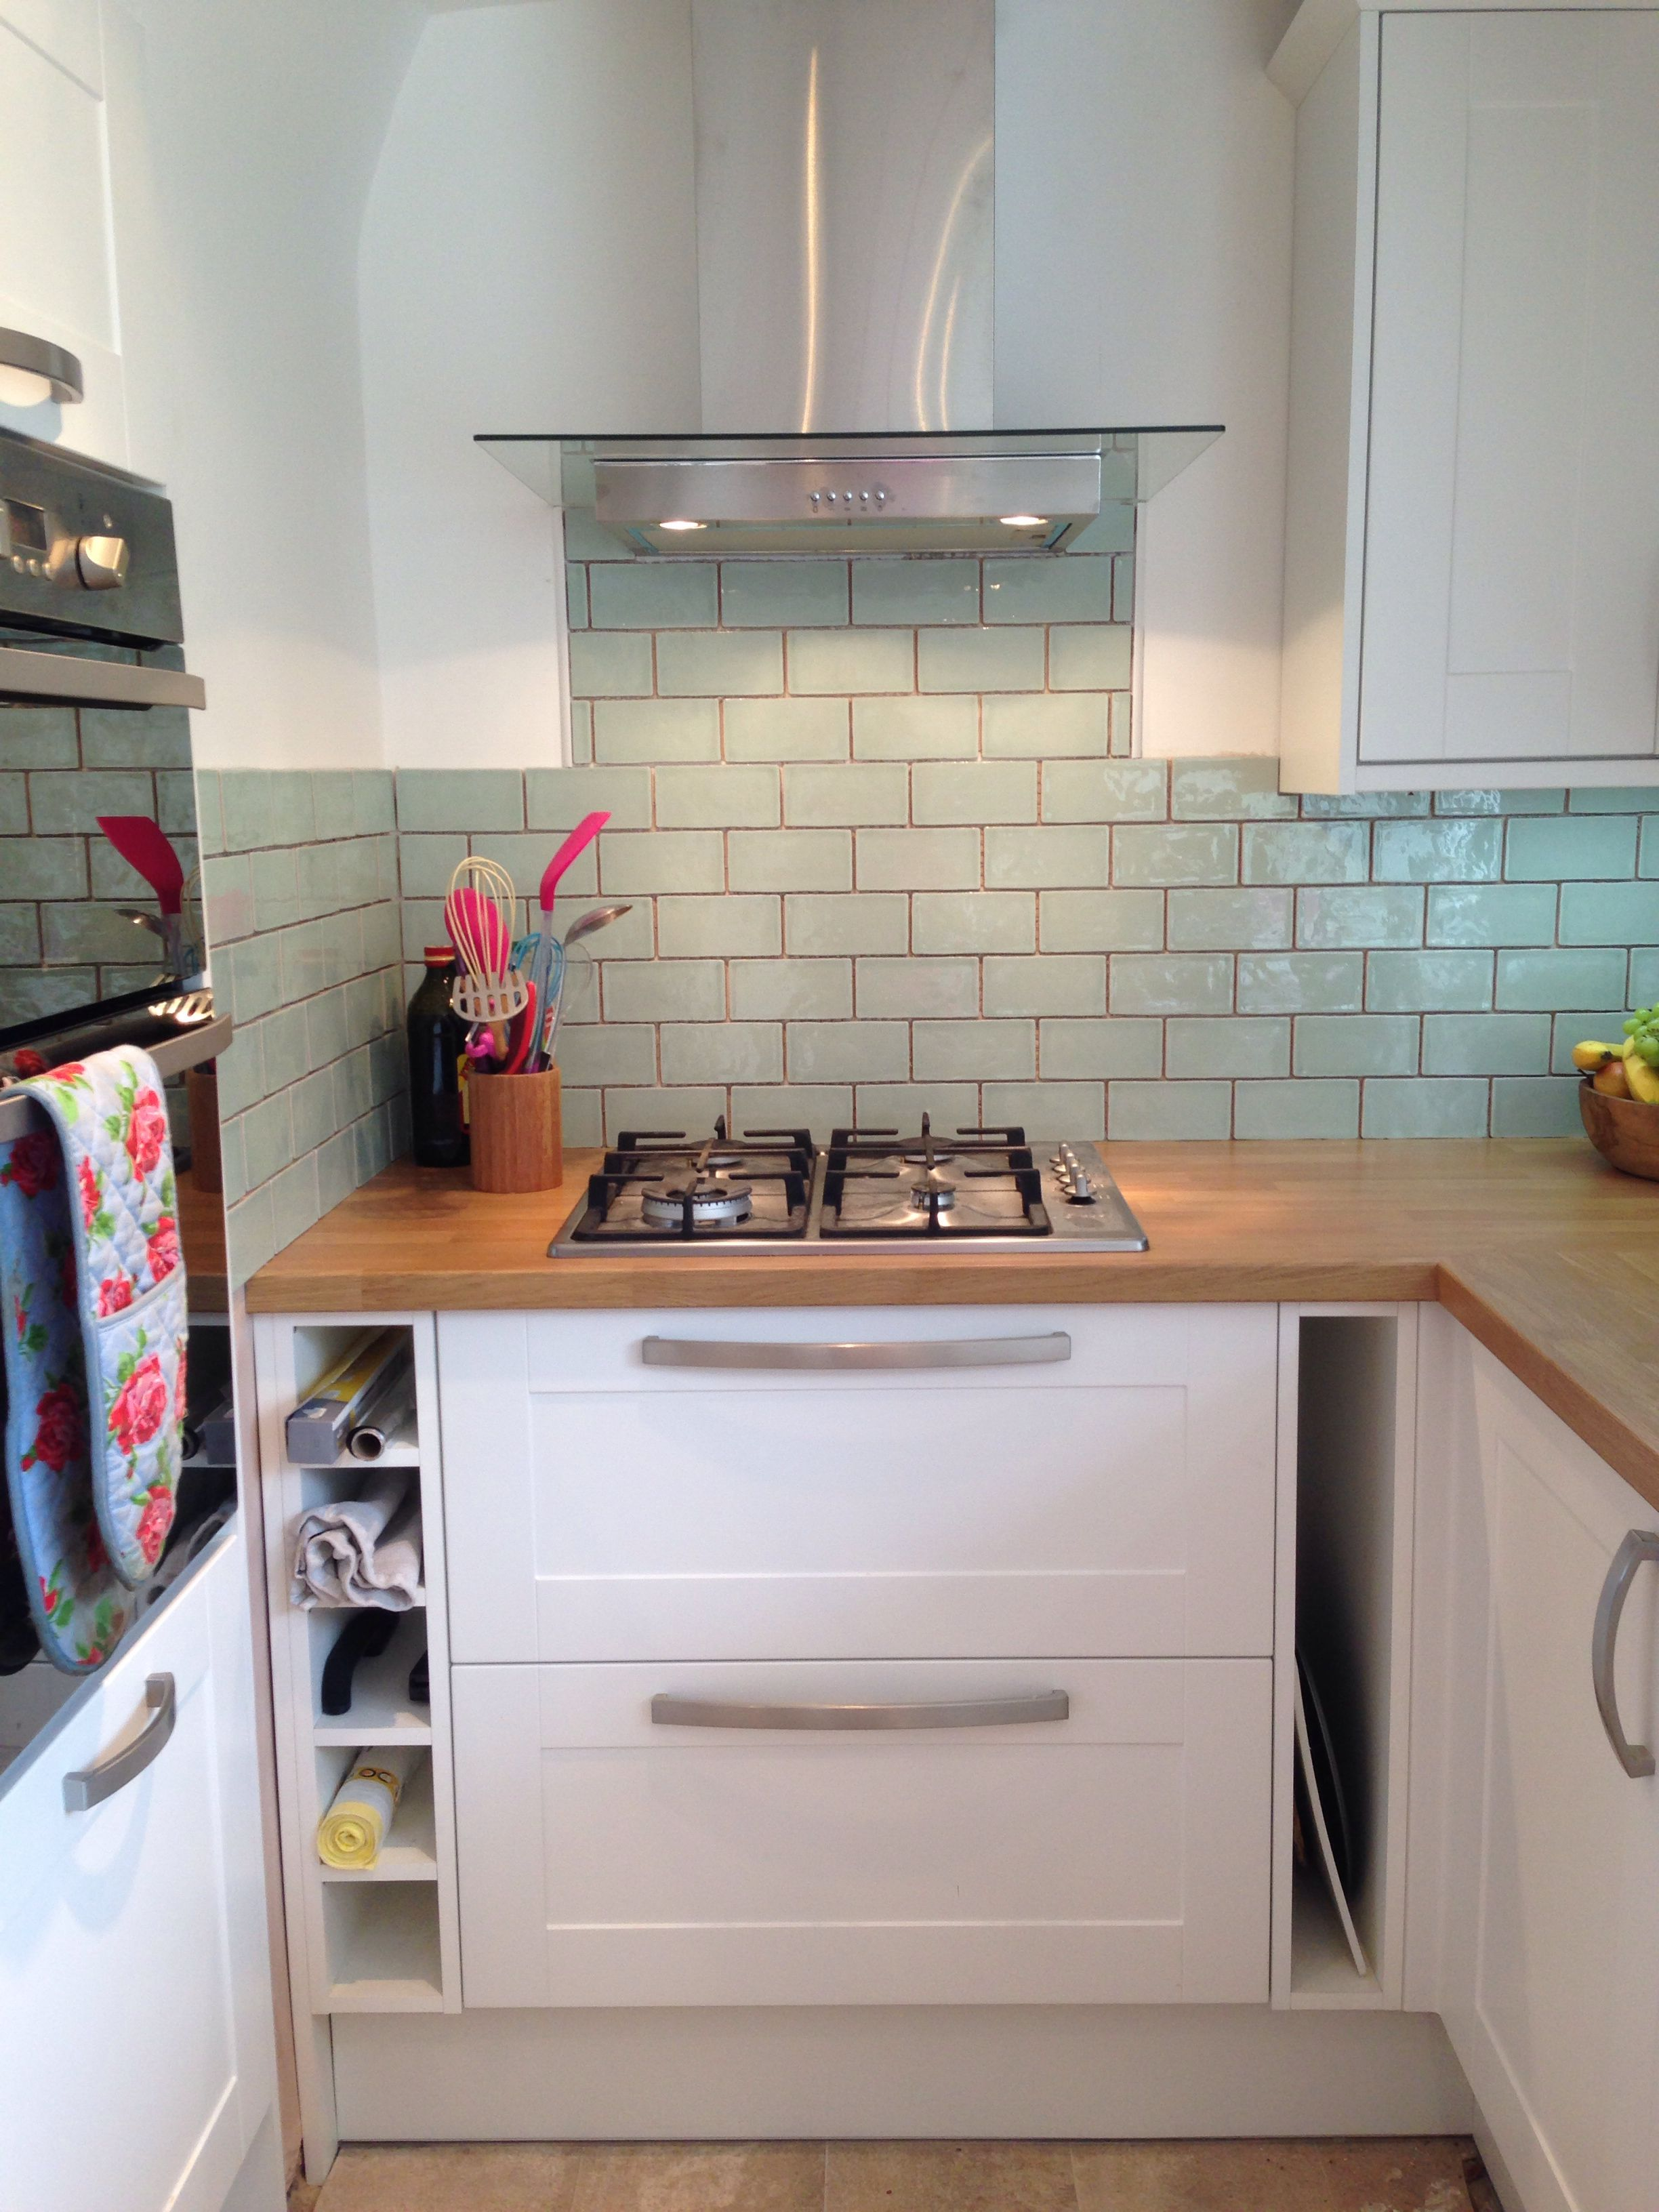 Küchen Spritzwand New Kitchen Laura Ashley Tiles Burford White Howdens